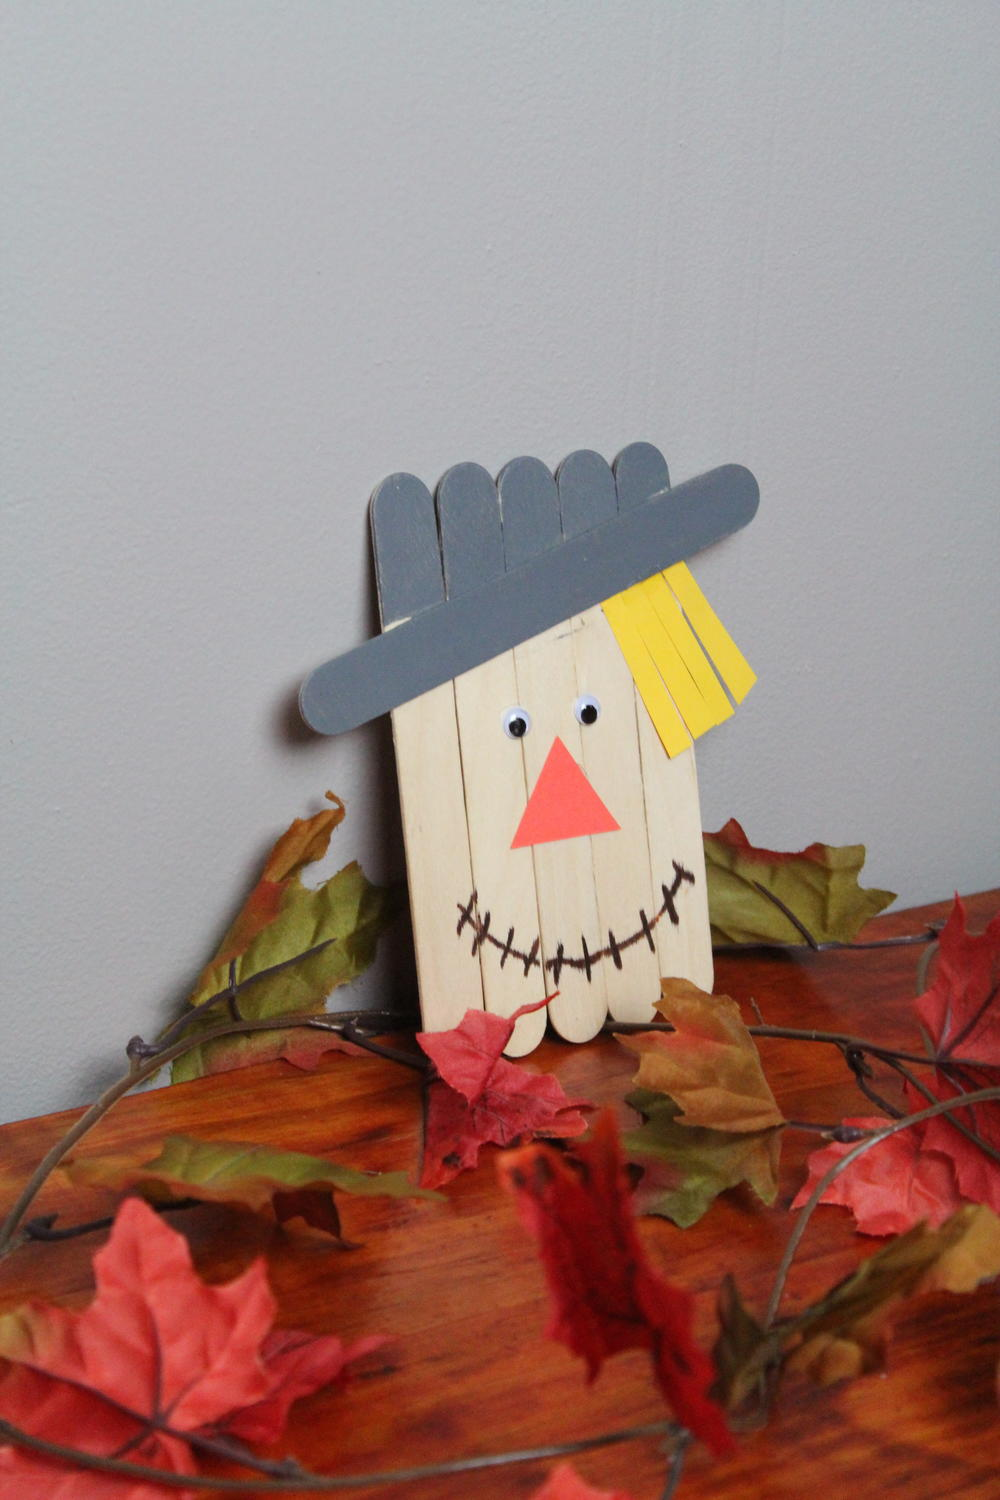 DIY Popsicle Stick Scarecrow